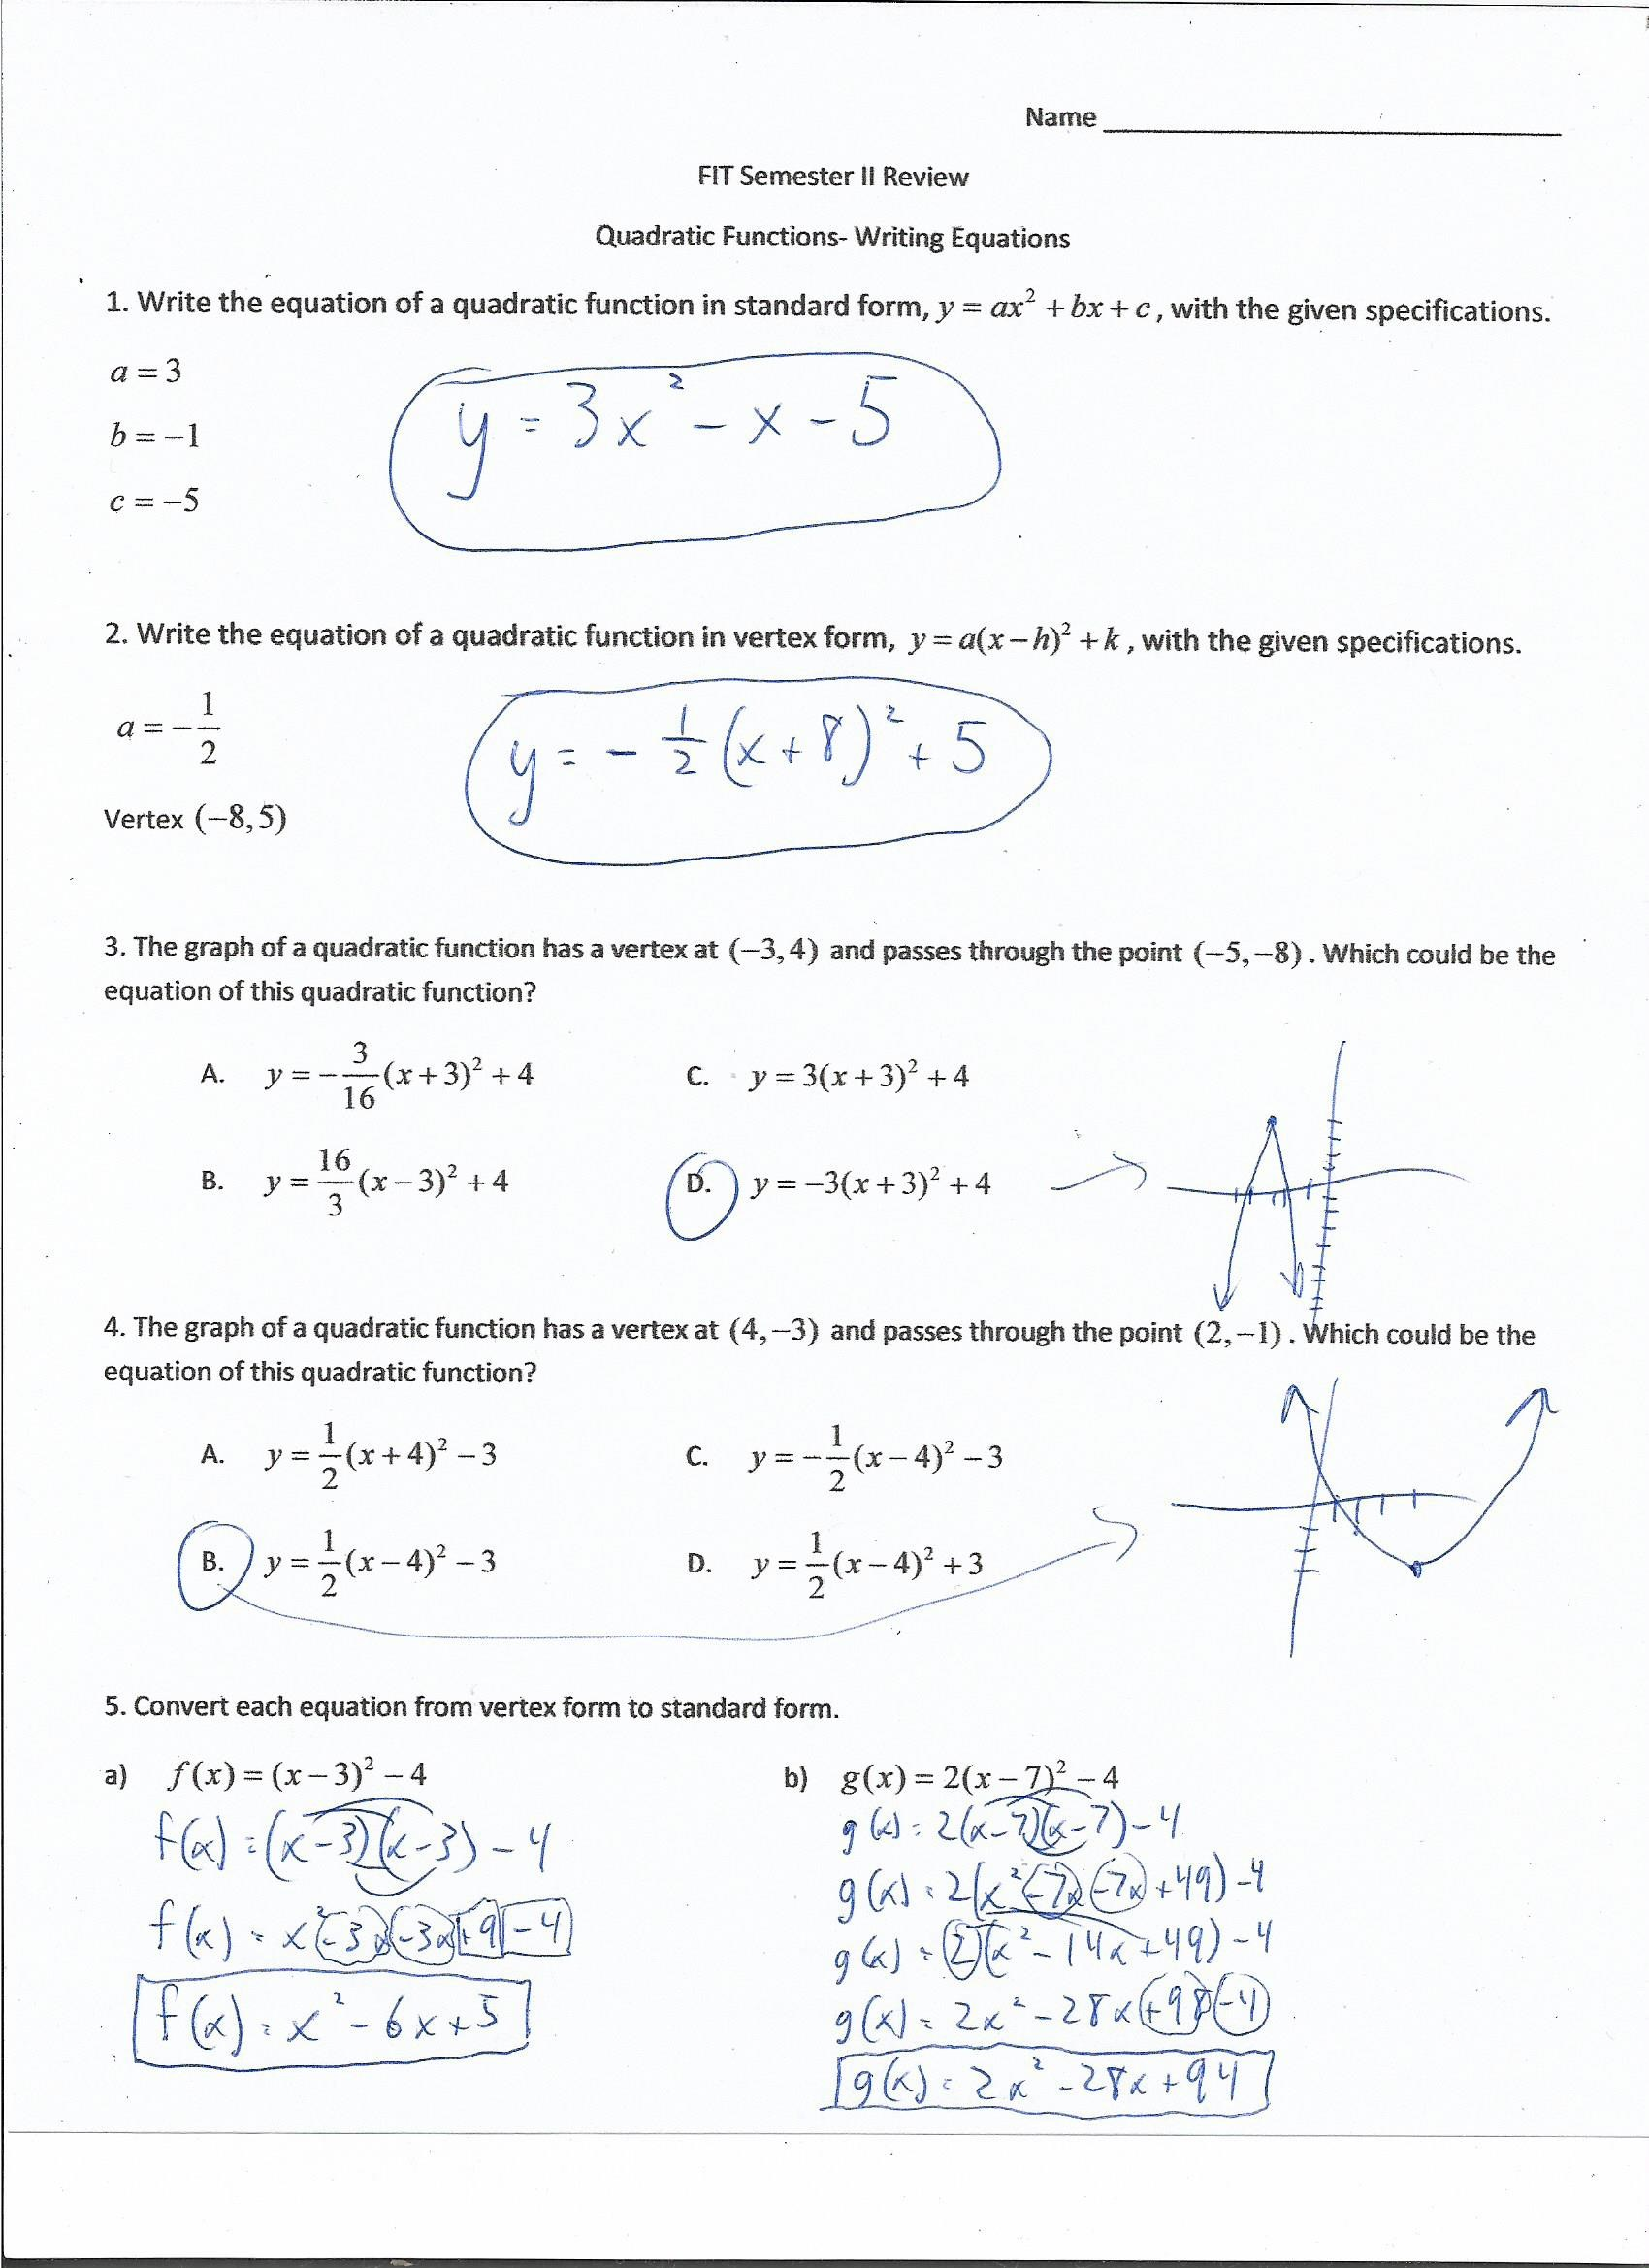 Akins high school final review with answers falaconquin